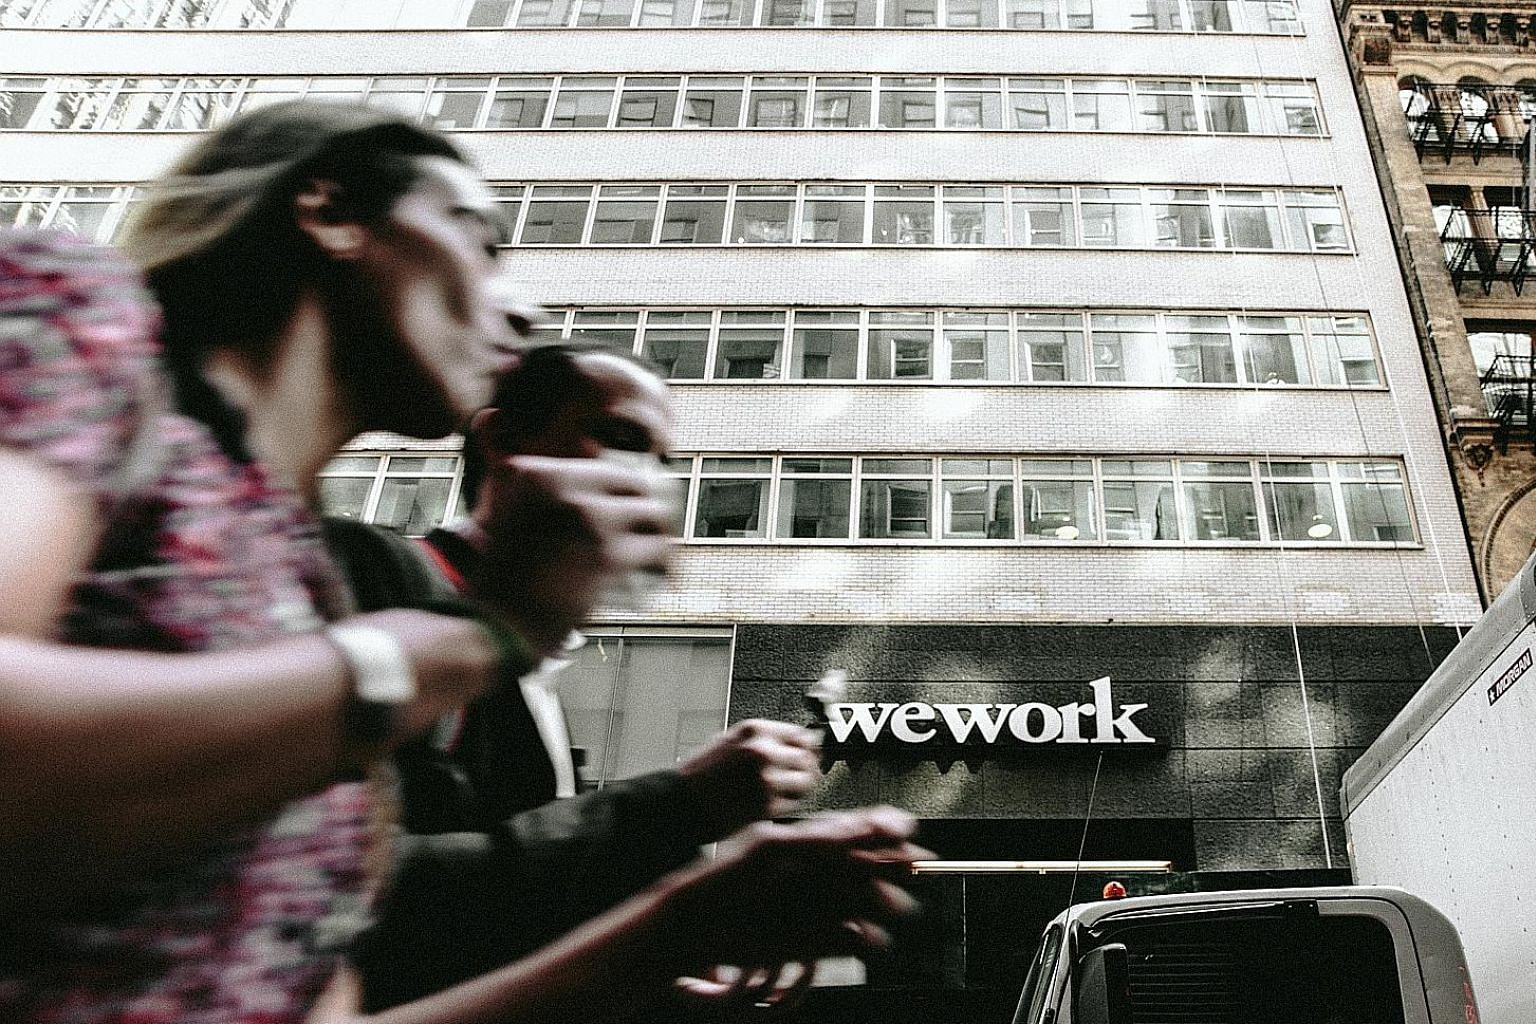 WeWork shelved plans for an initial public offering (IPO) on Monday, a week after chief executive Adam Neumann stepped down. The writer says Mr Neumann's lofty rhetoric counted for little when WeWork's IPO discussions with investors indicated the fir